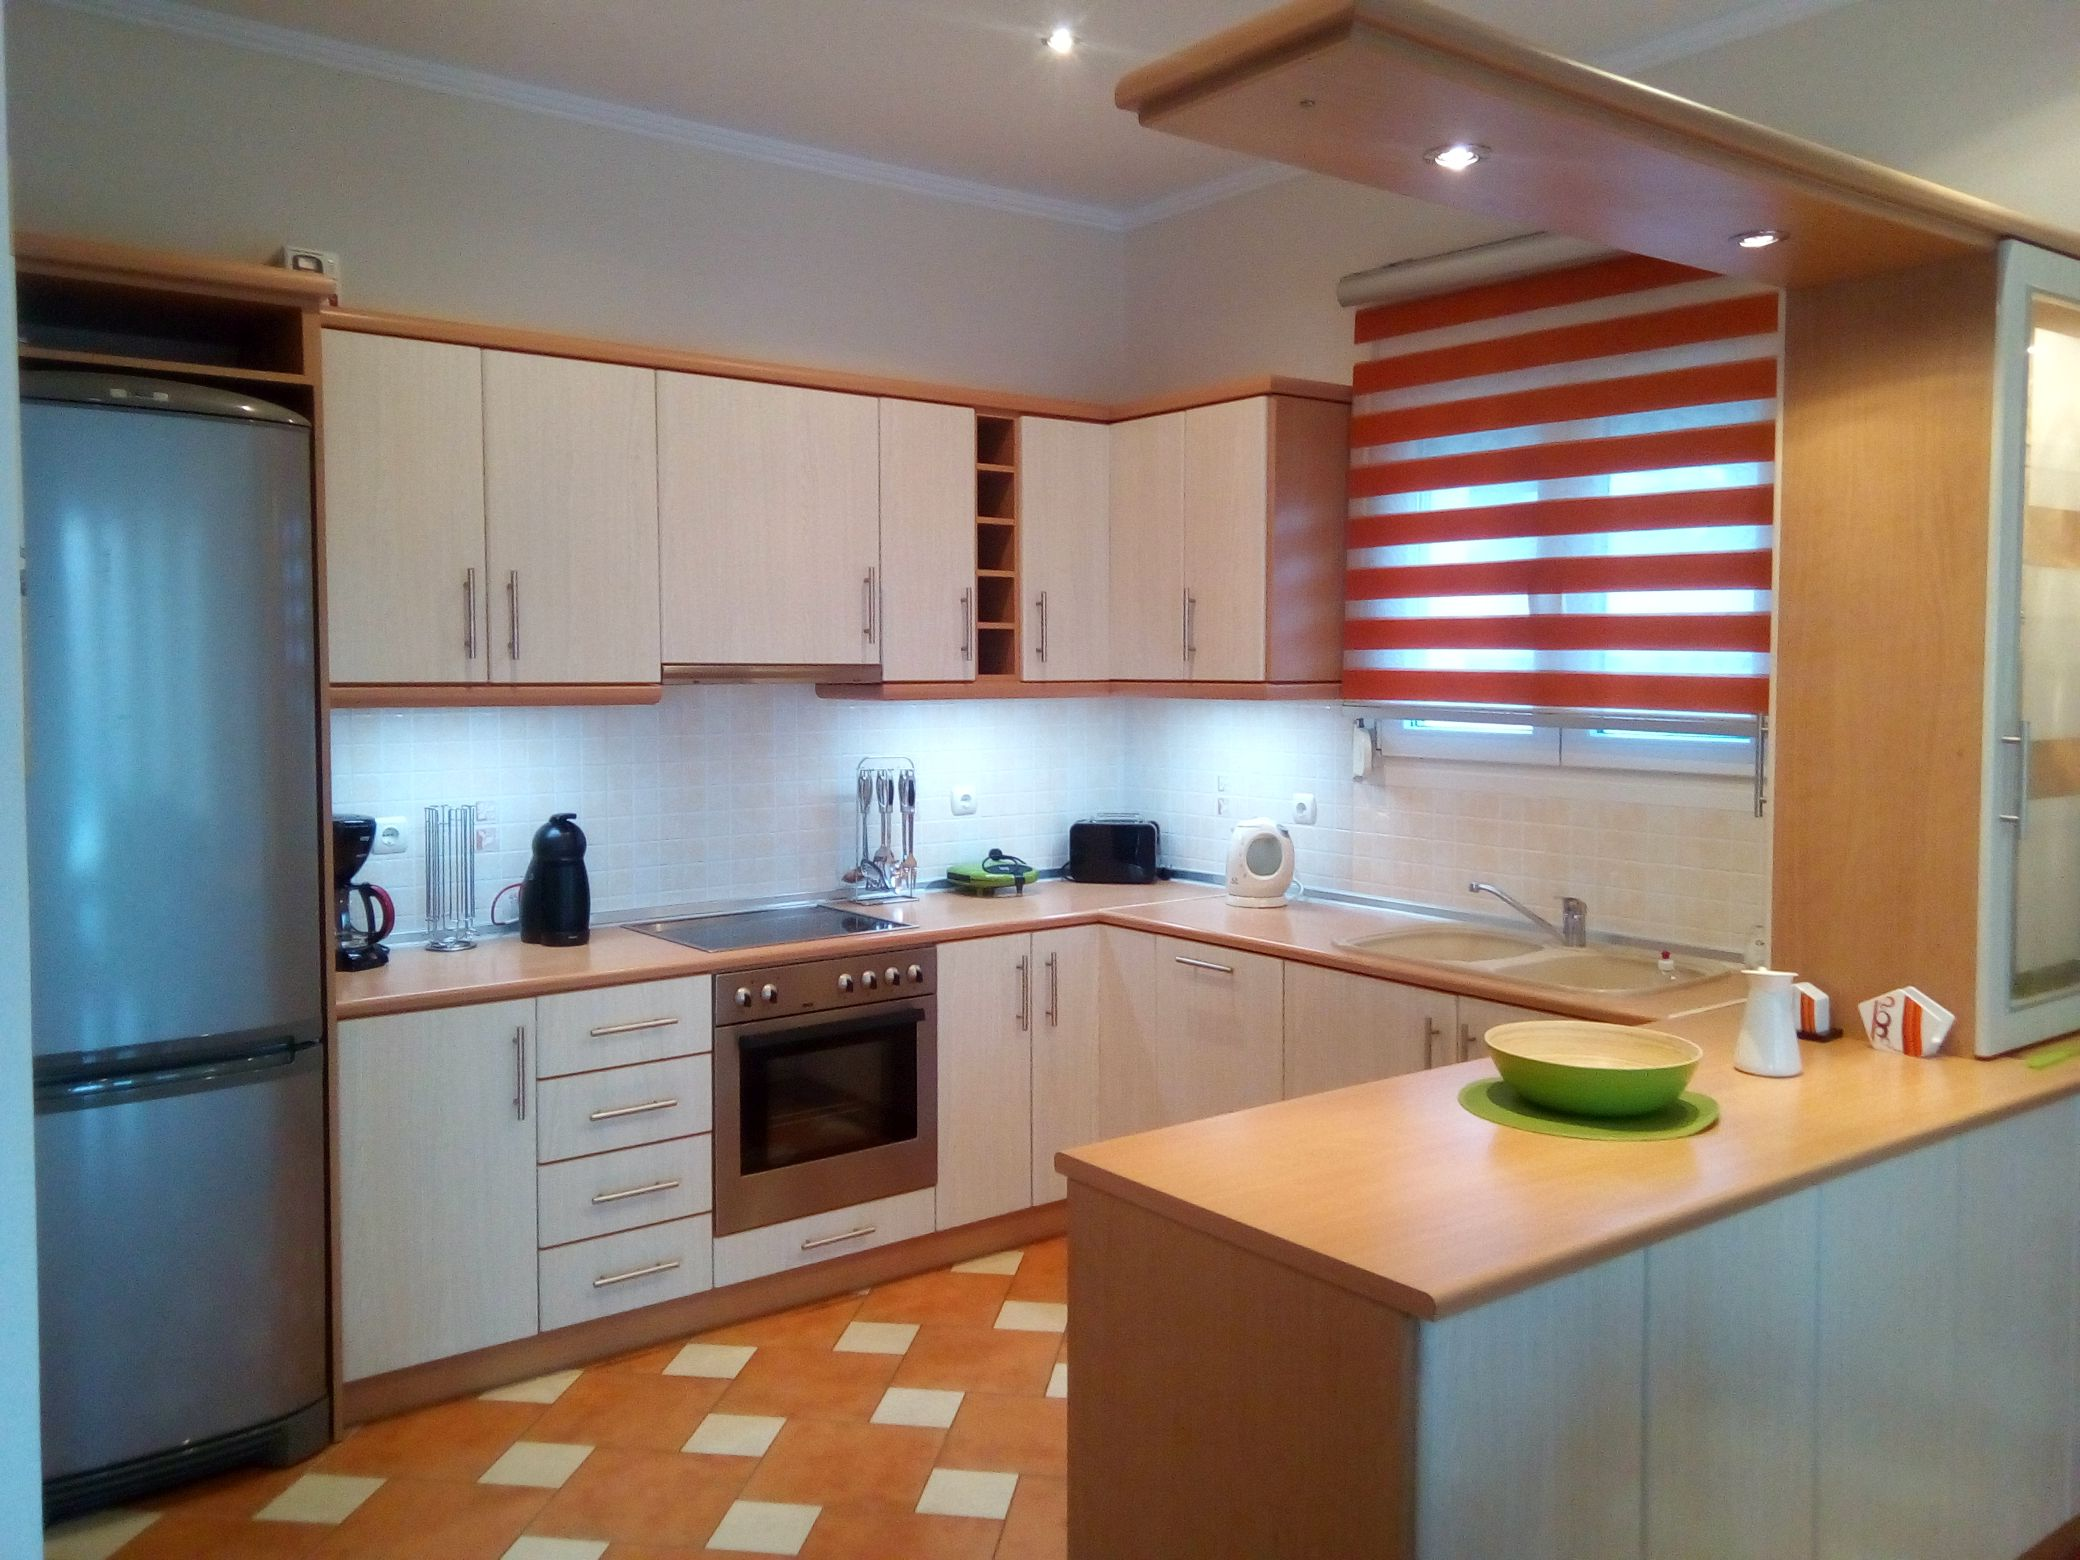 Samos Option 9 (130 sq.m-3 bedrooms)